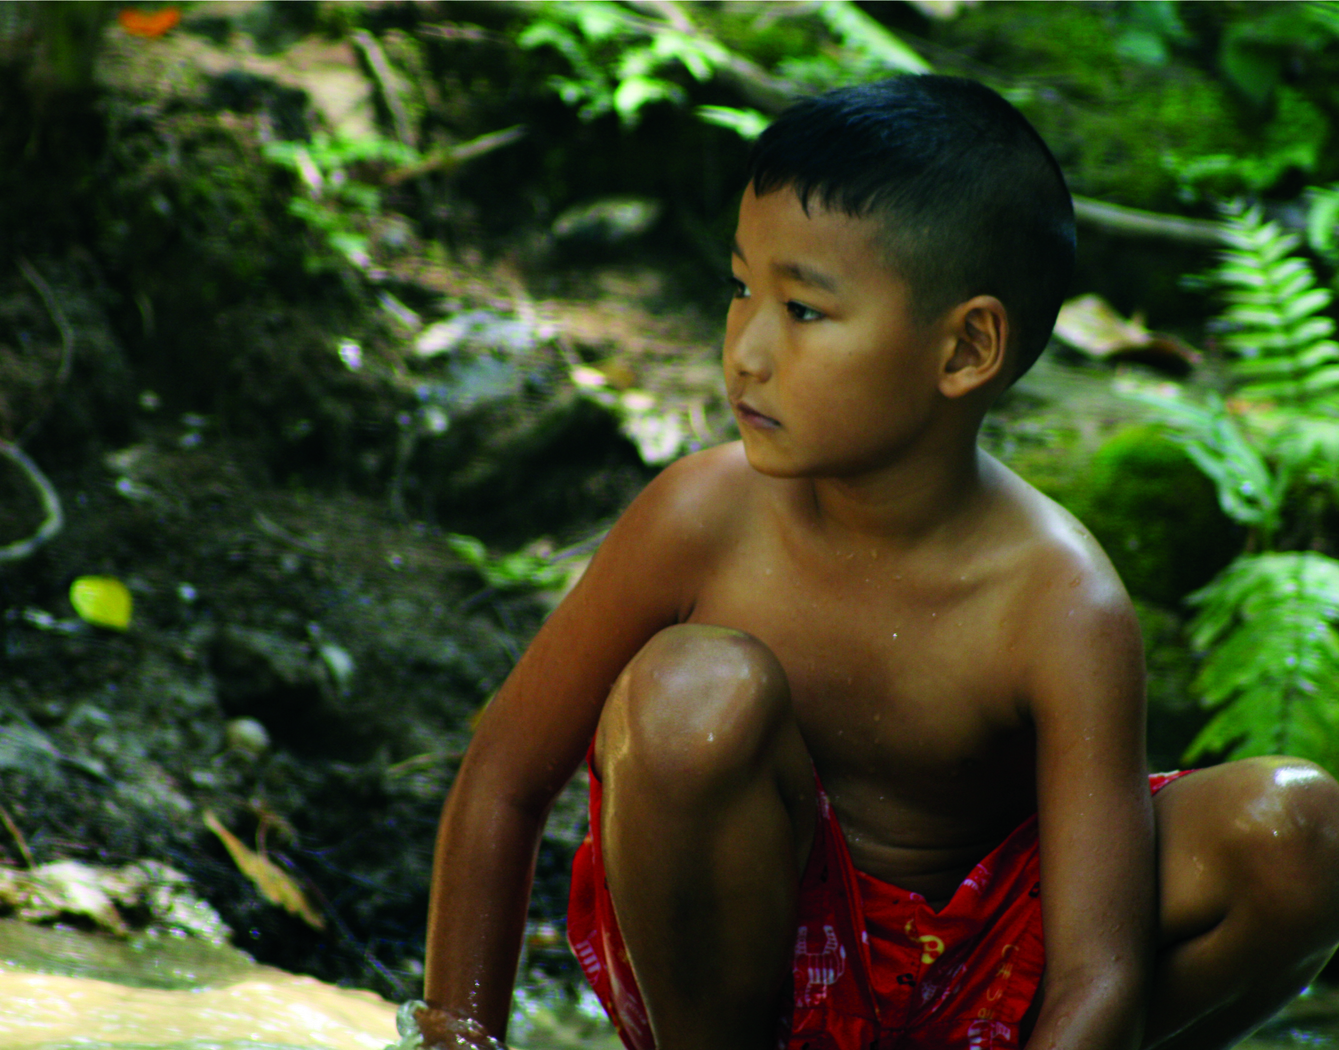 Thai boy at the waterfall